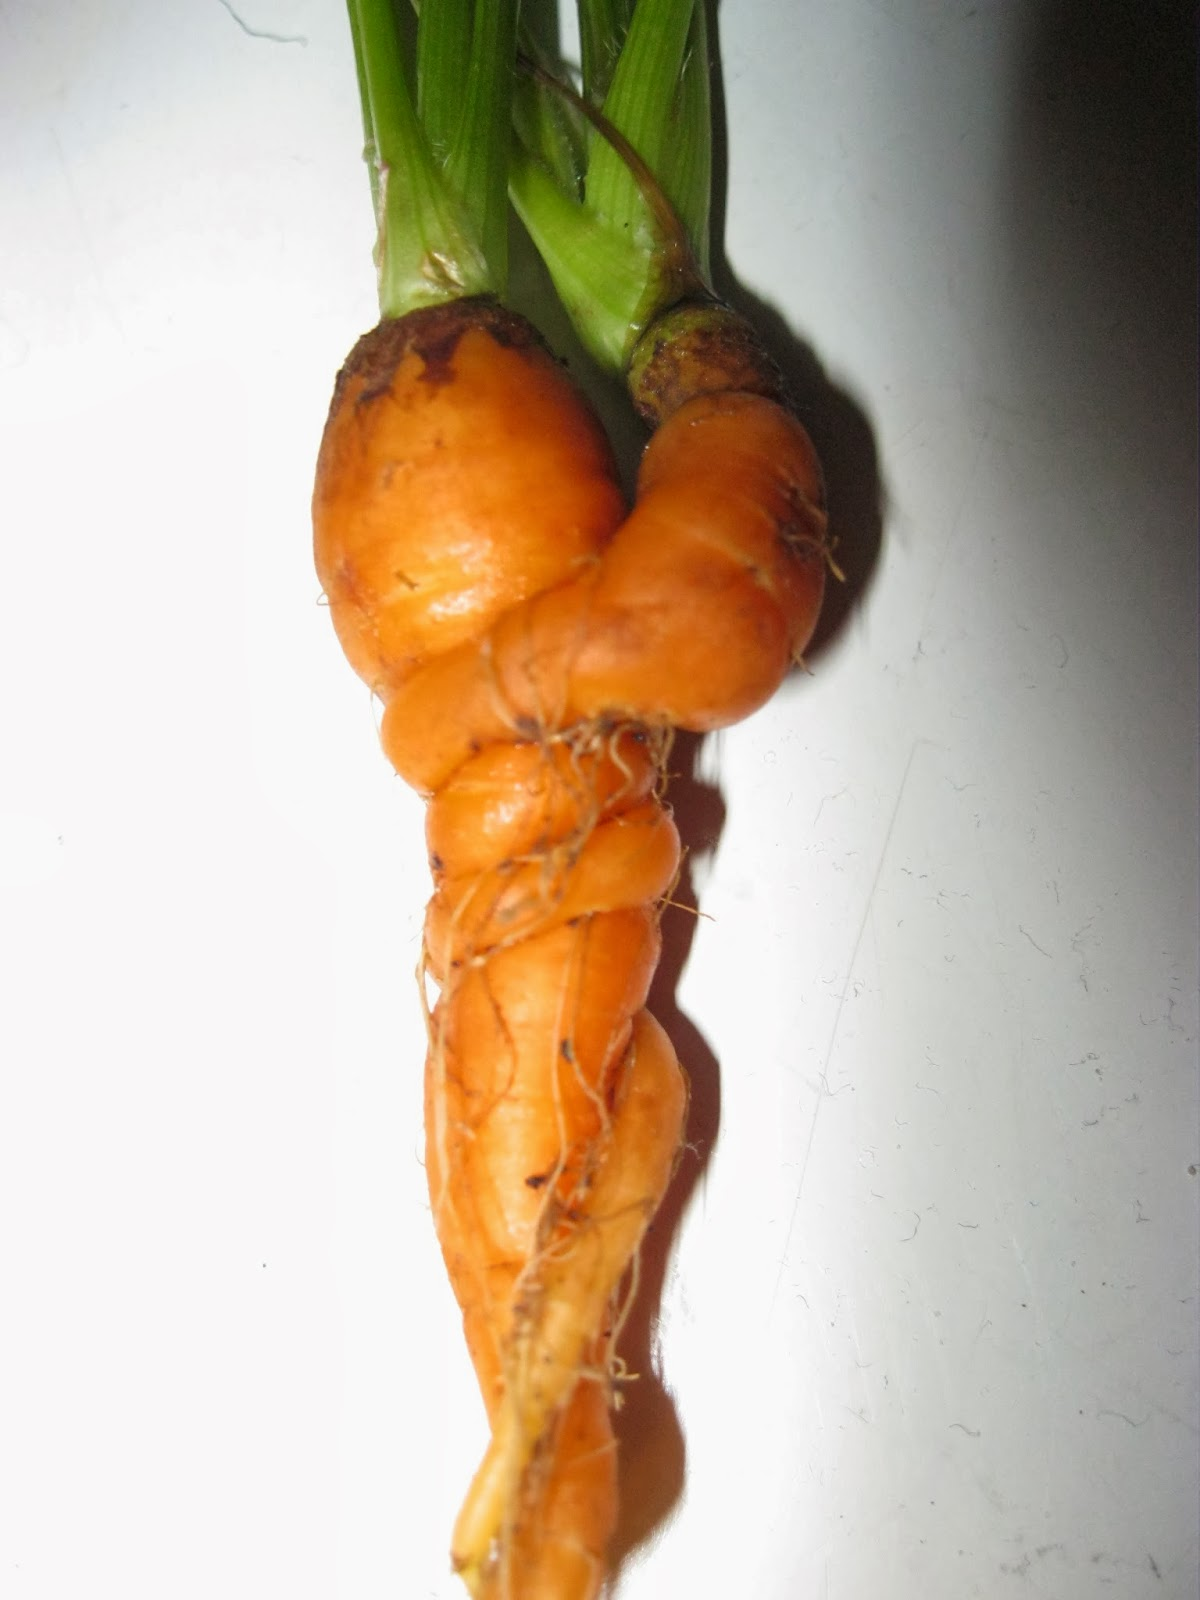 Pity, that Carrot in anus topic